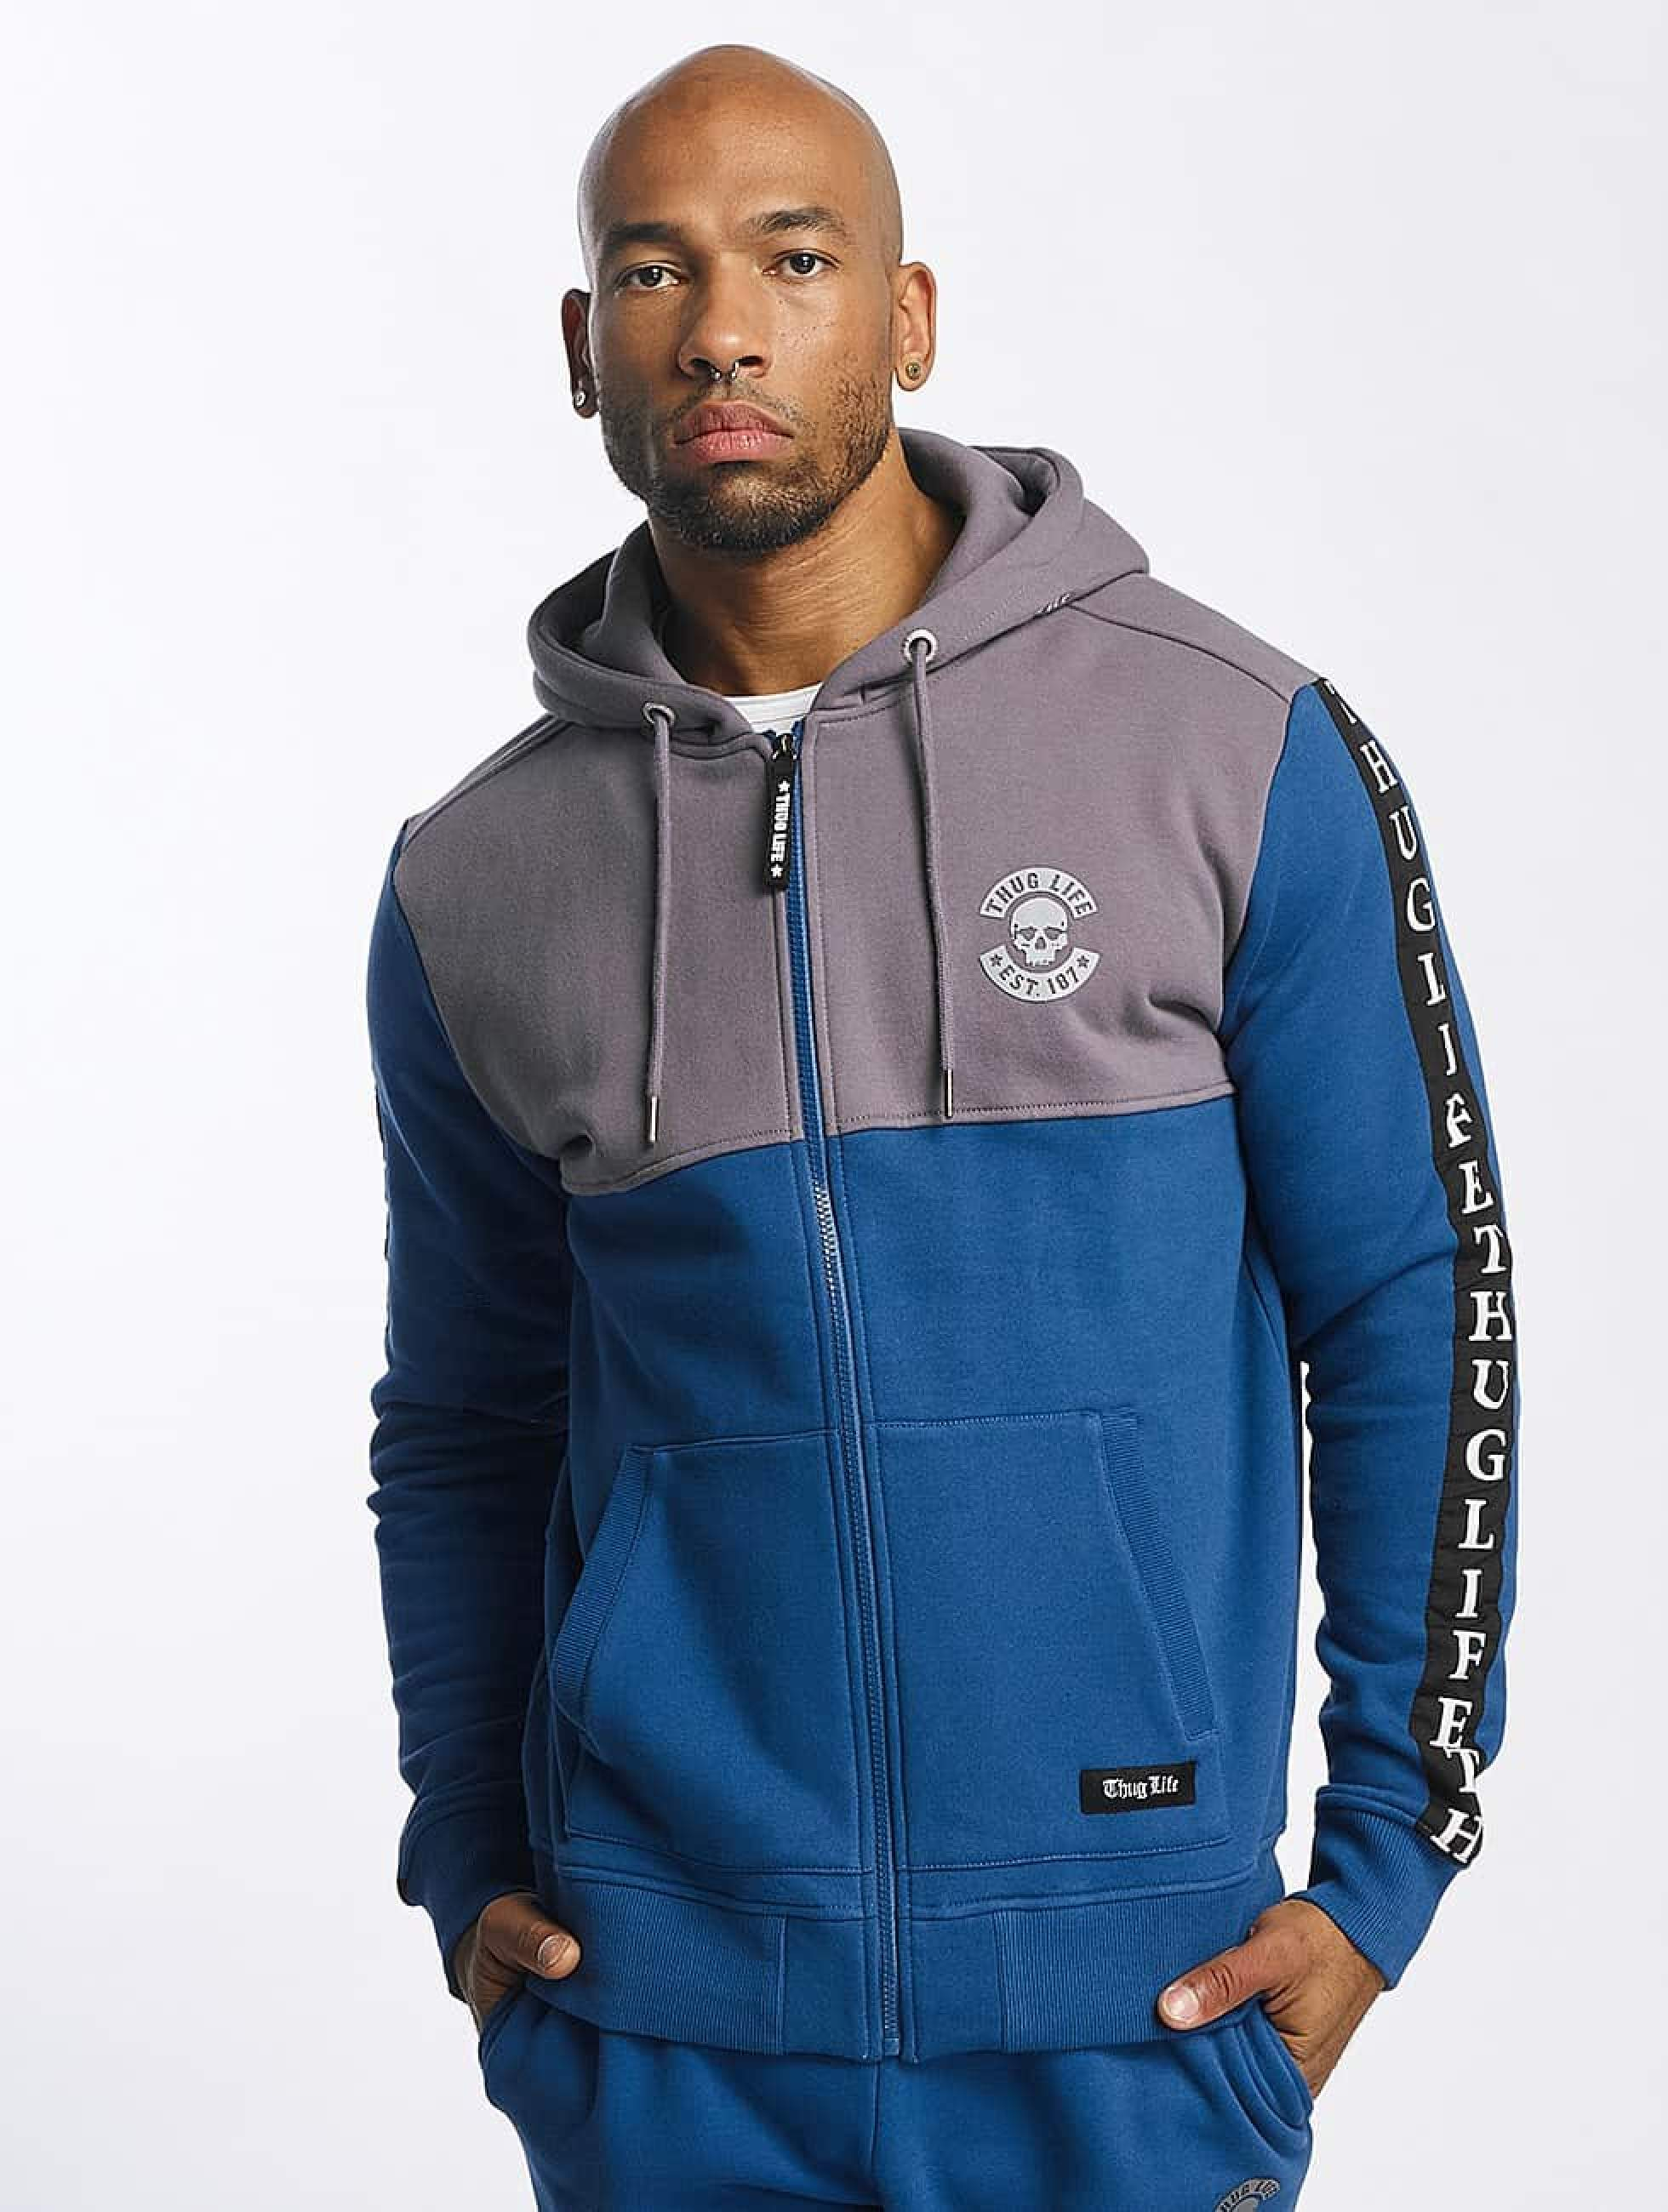 Thug Life / Zip Hoodie Wired in blue S